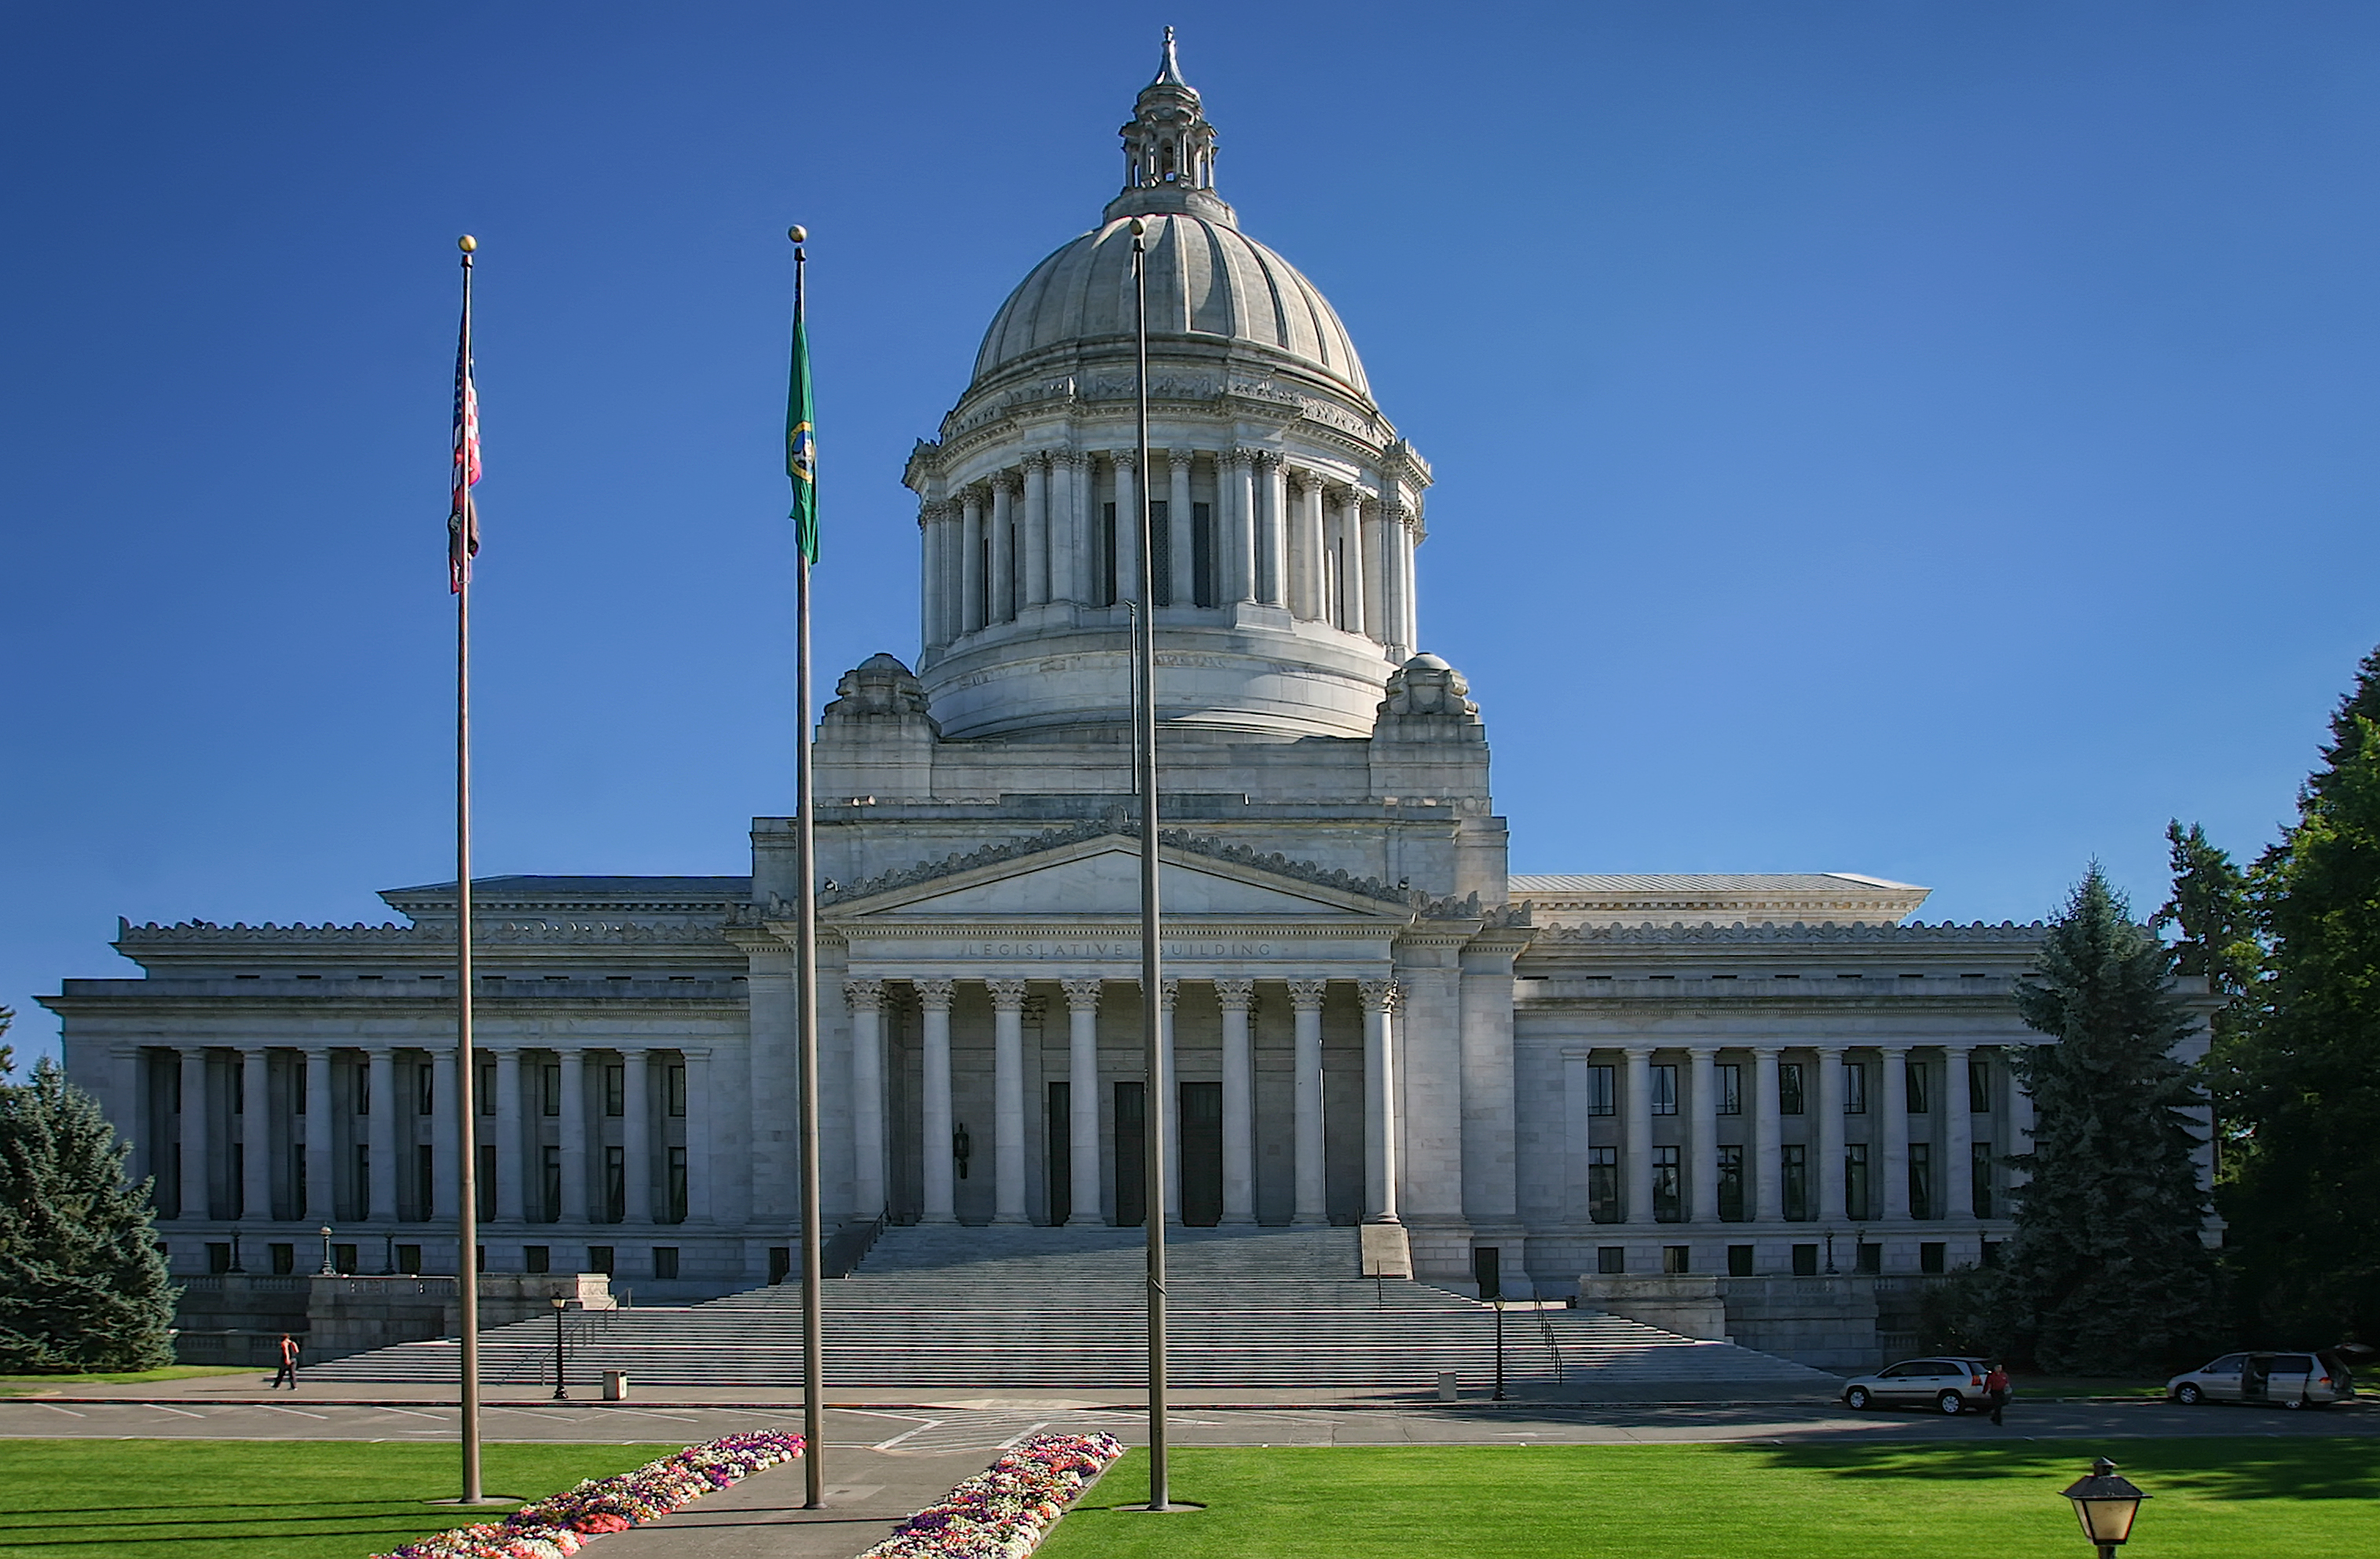 The Washington State Capitol building in Olympia. Photo taken on August 13, 2006.